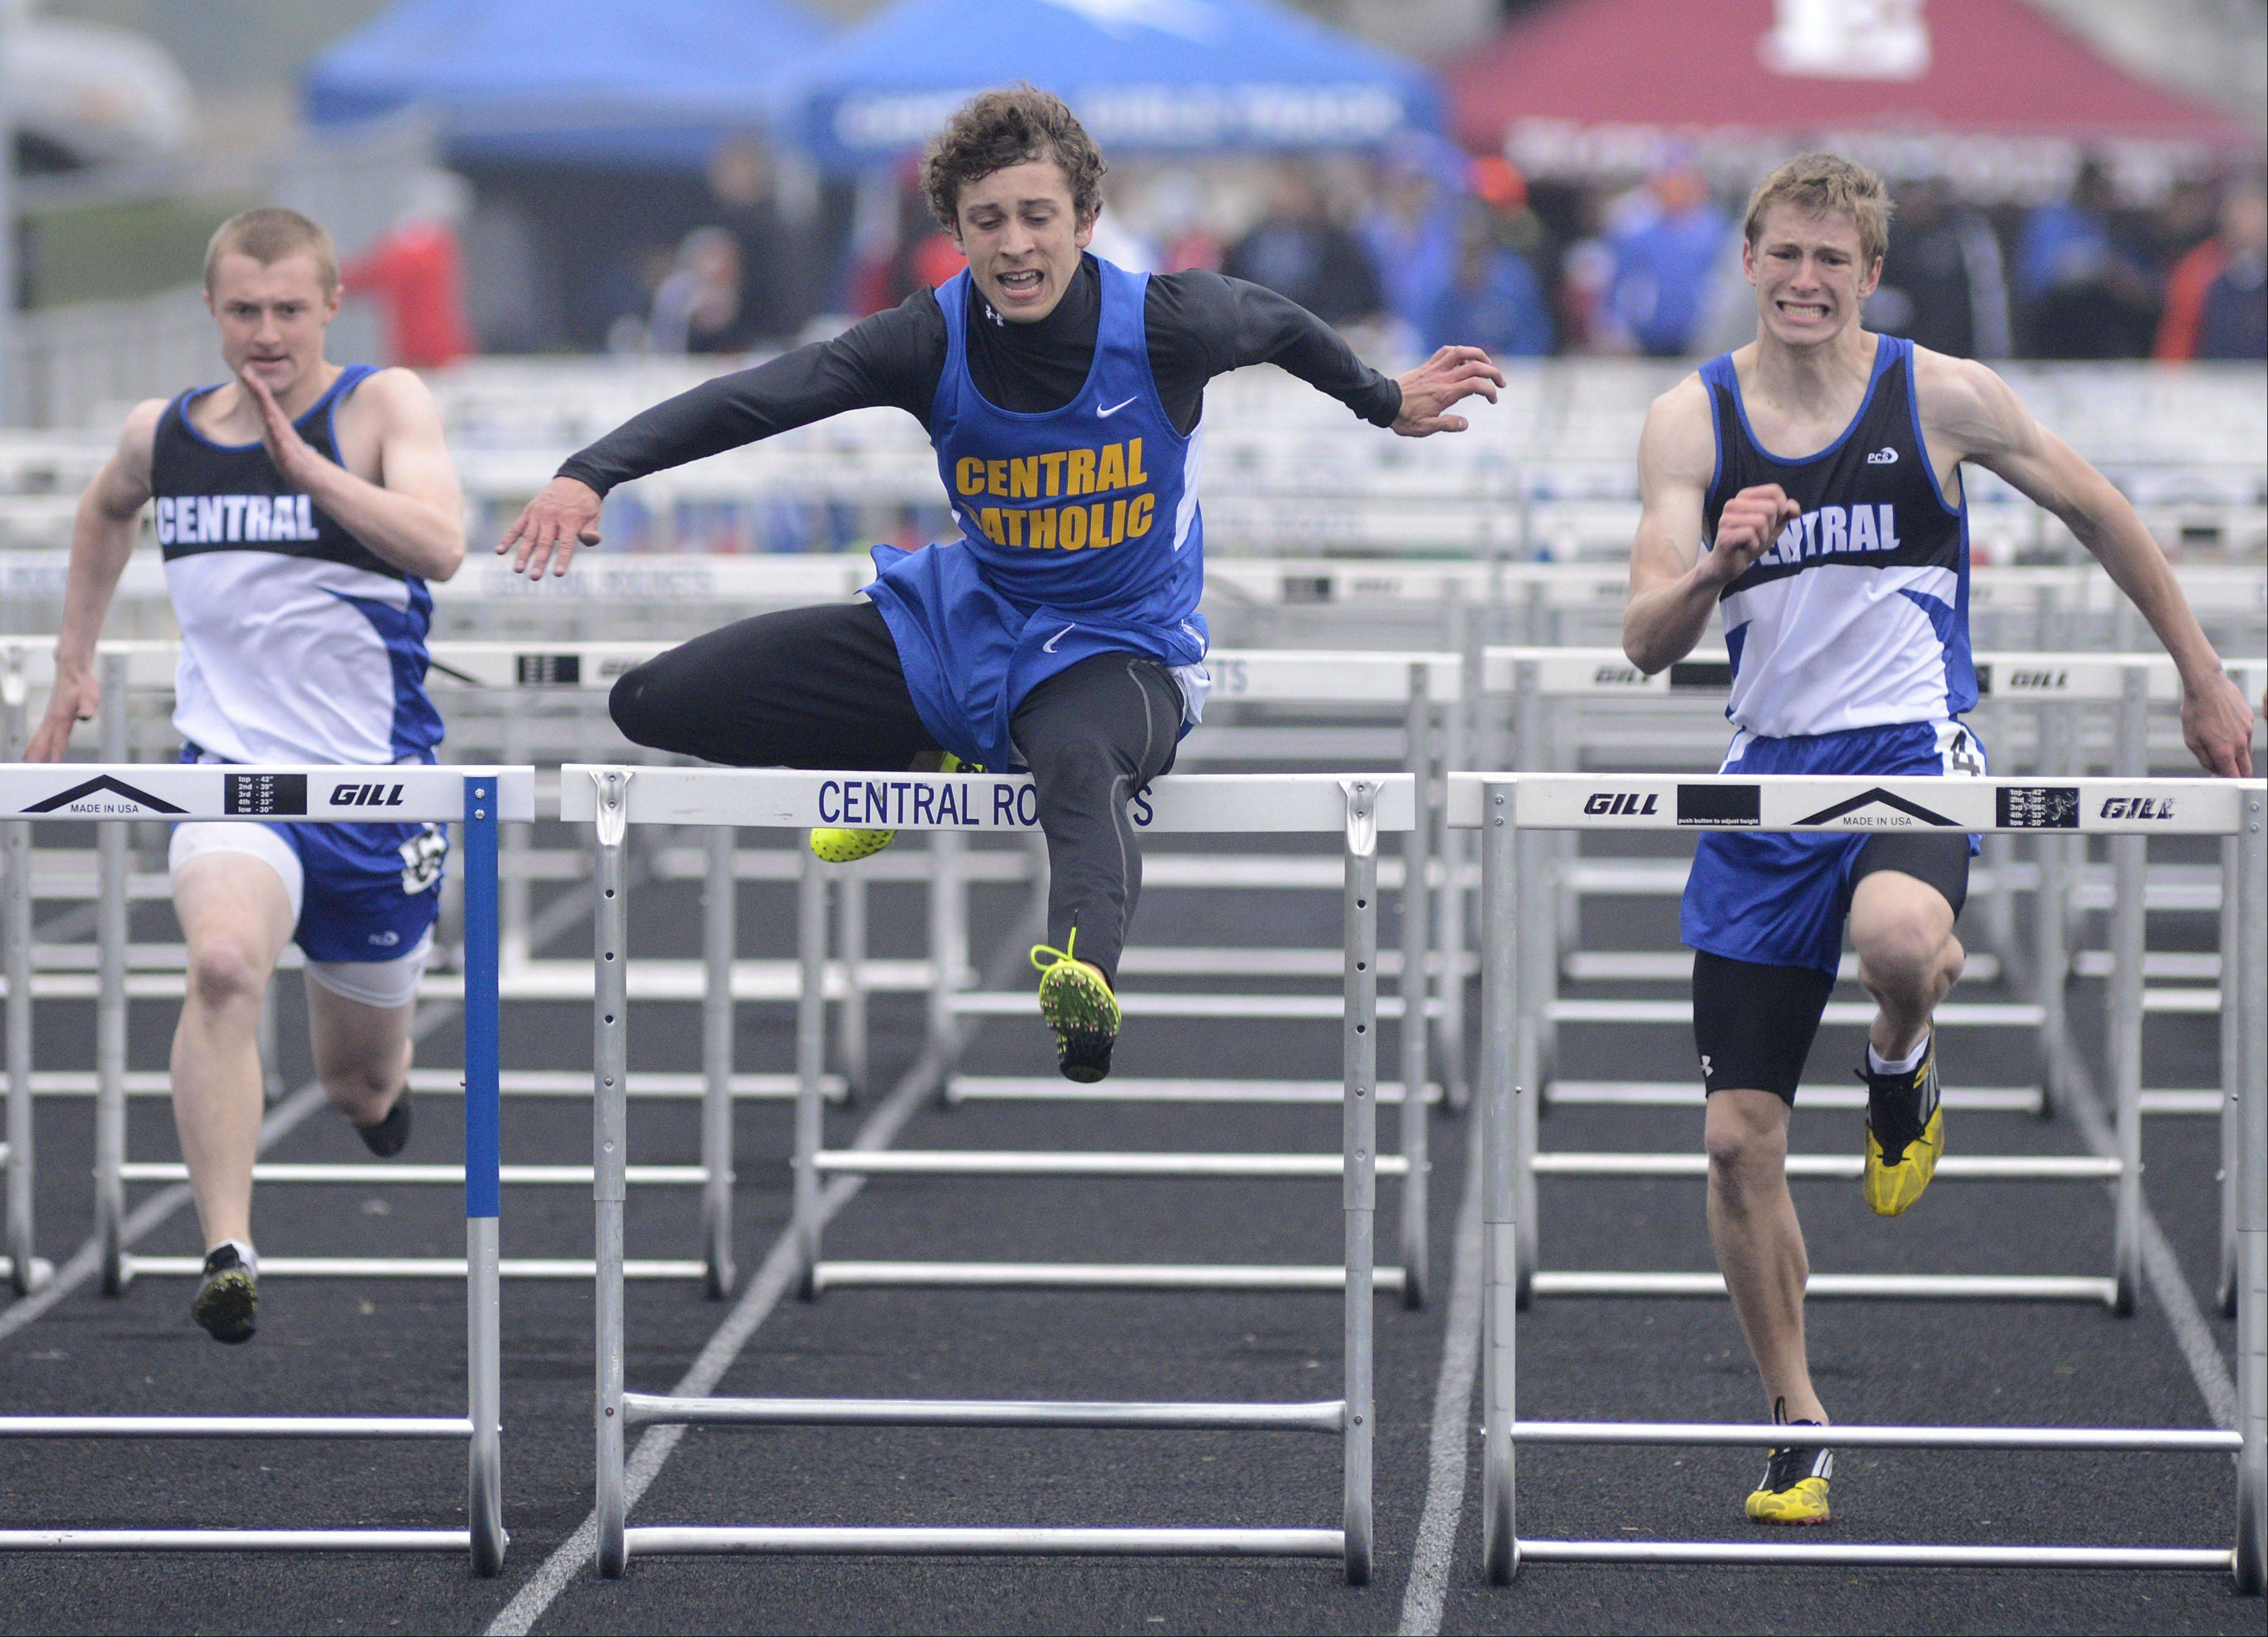 Aurora Central Catholic's Patrick Lefevre wins the 110-meter hurdles final at the Kane County boys track meet at Burlington Central on Friday.